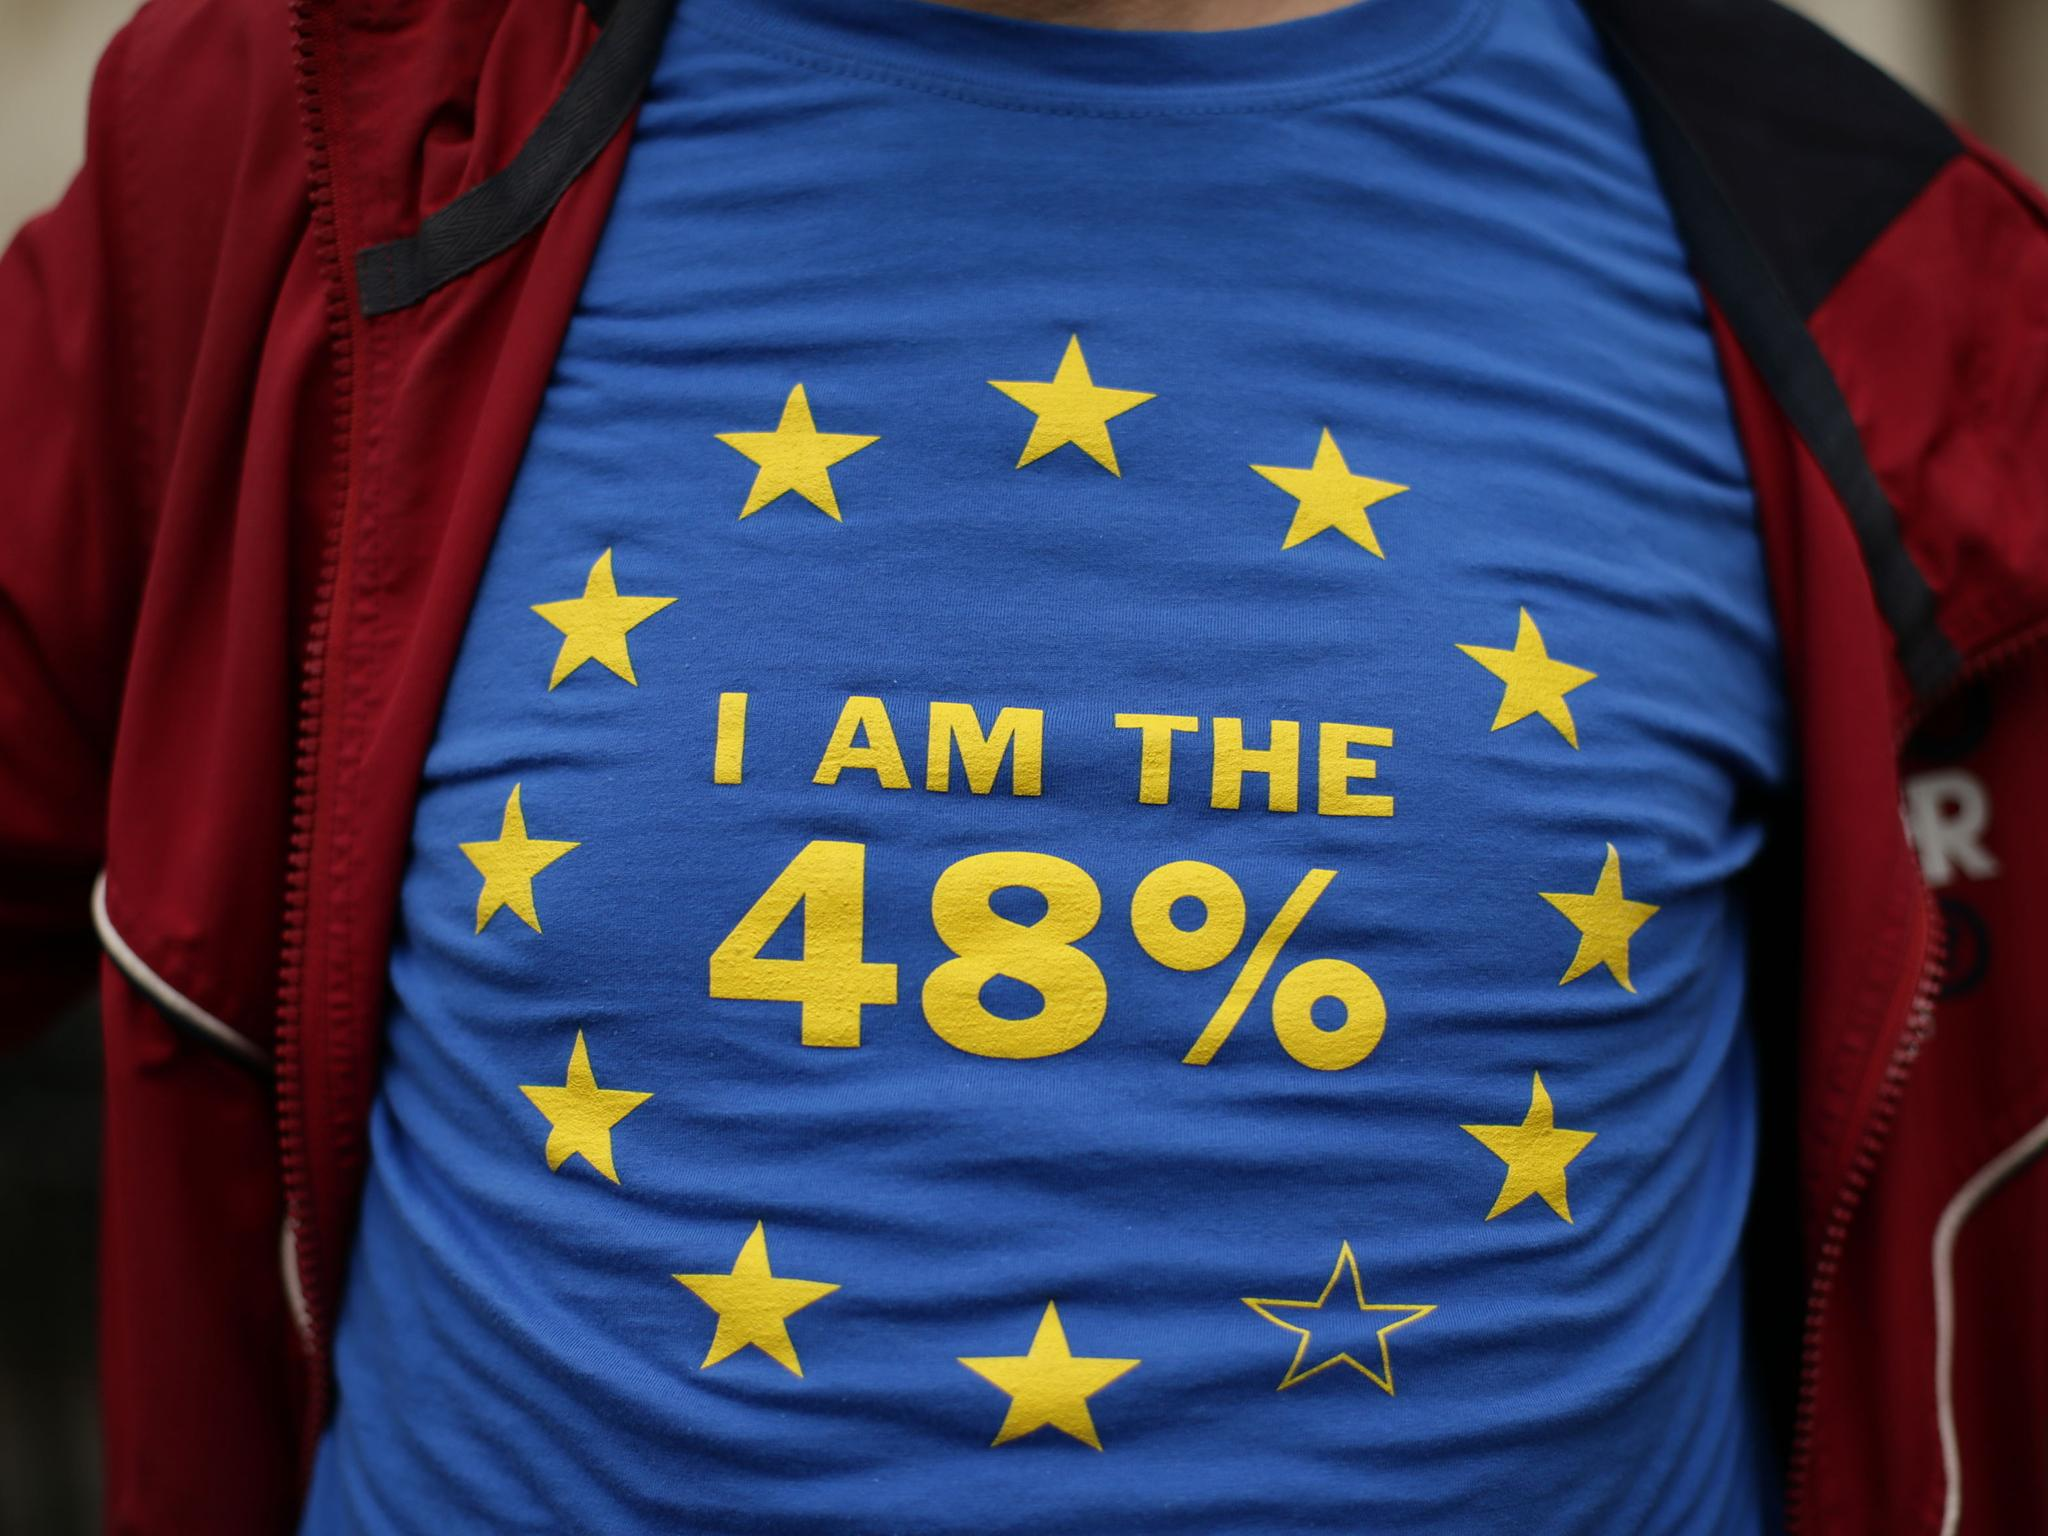 If you don't want to leave the EU, you don't have to – become an associate citizen